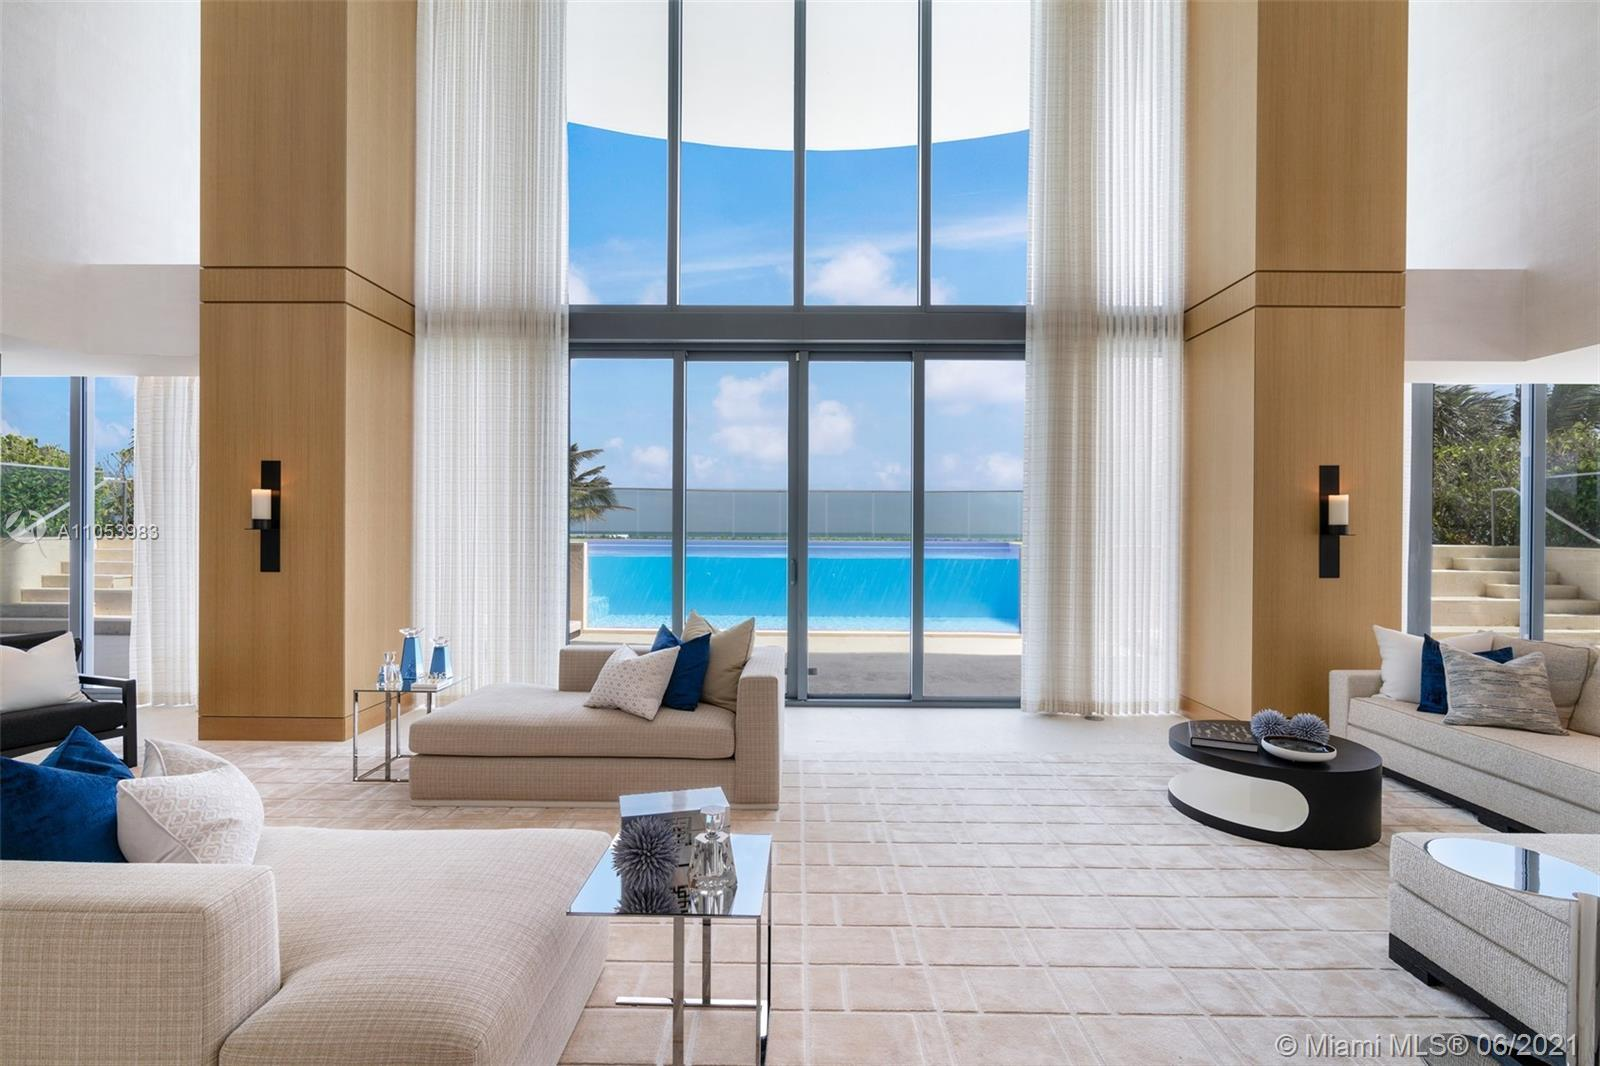 The Beach House at Regalia Sunny Isles is an oceanfront residence at the scale of a private home, wi